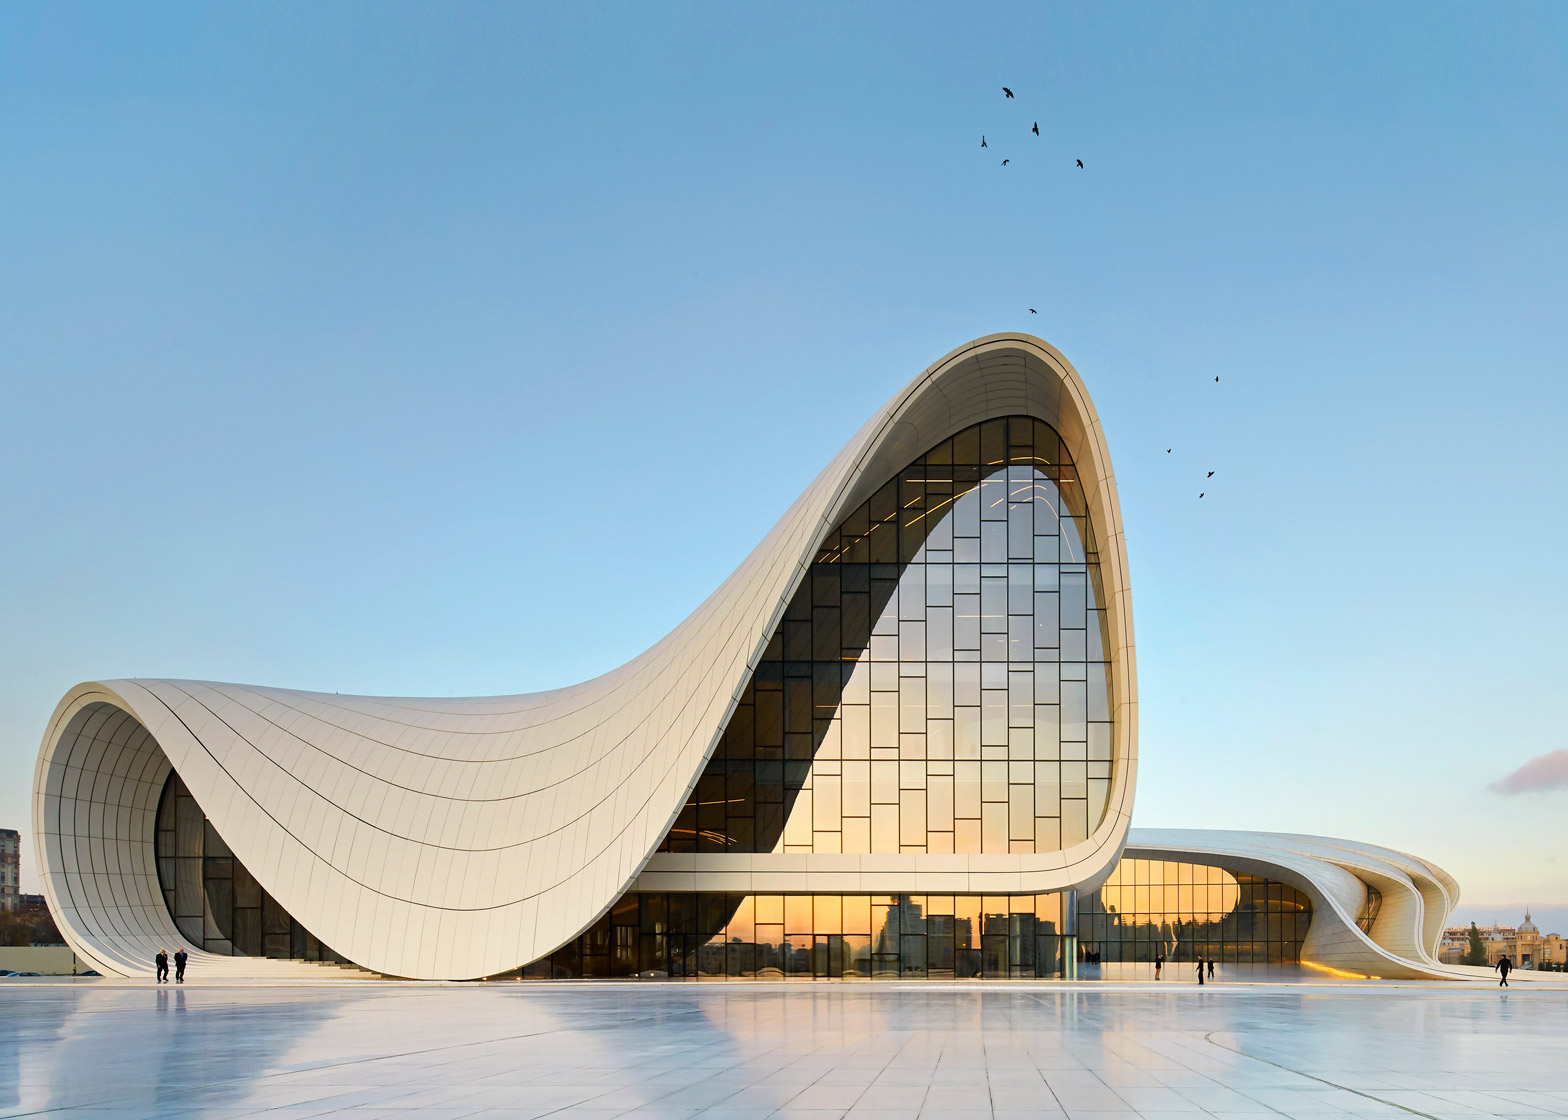 zaha hadids best buildings photographed by hufton crow